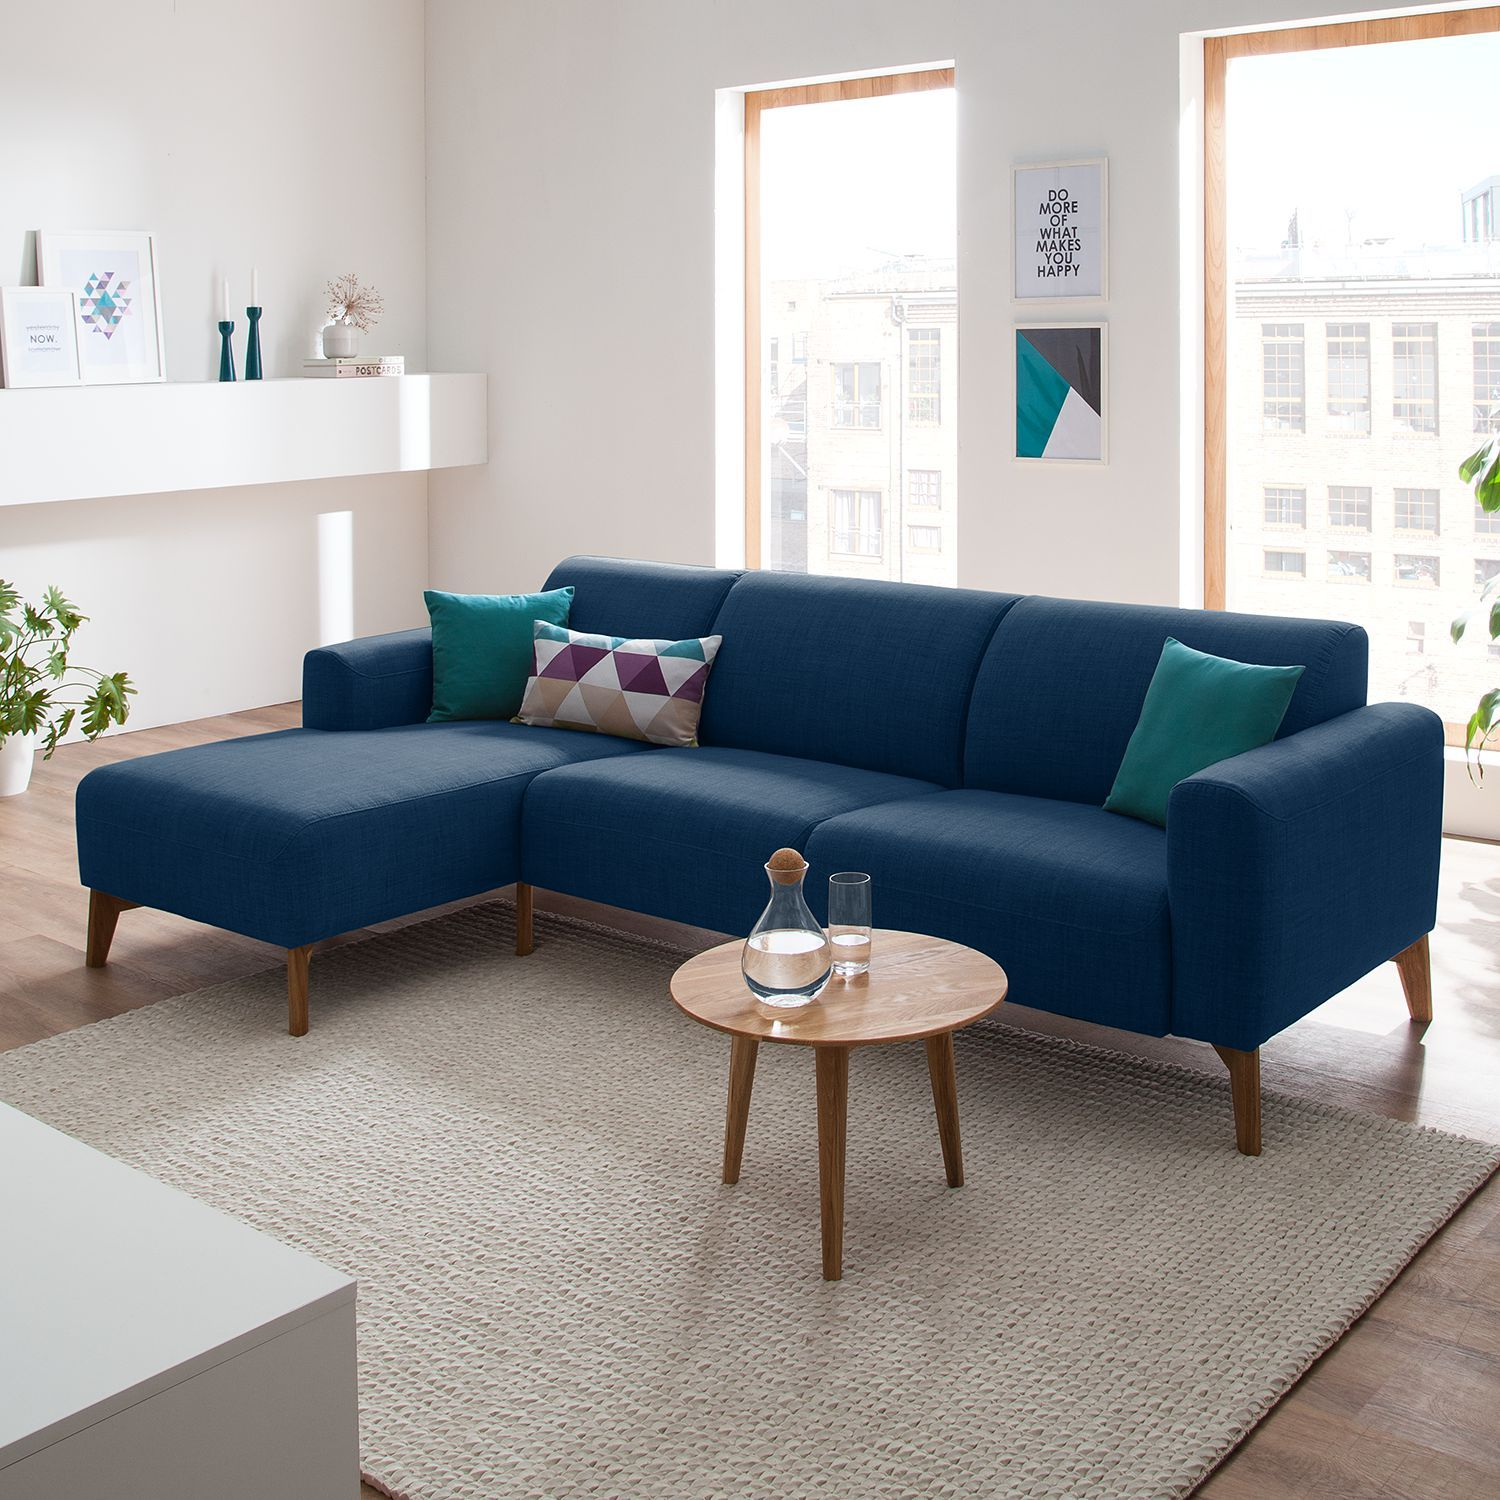 Ecksofa Norwich Ecksofa Bora Ii Webstoff Products Sofa Furniture Living Room